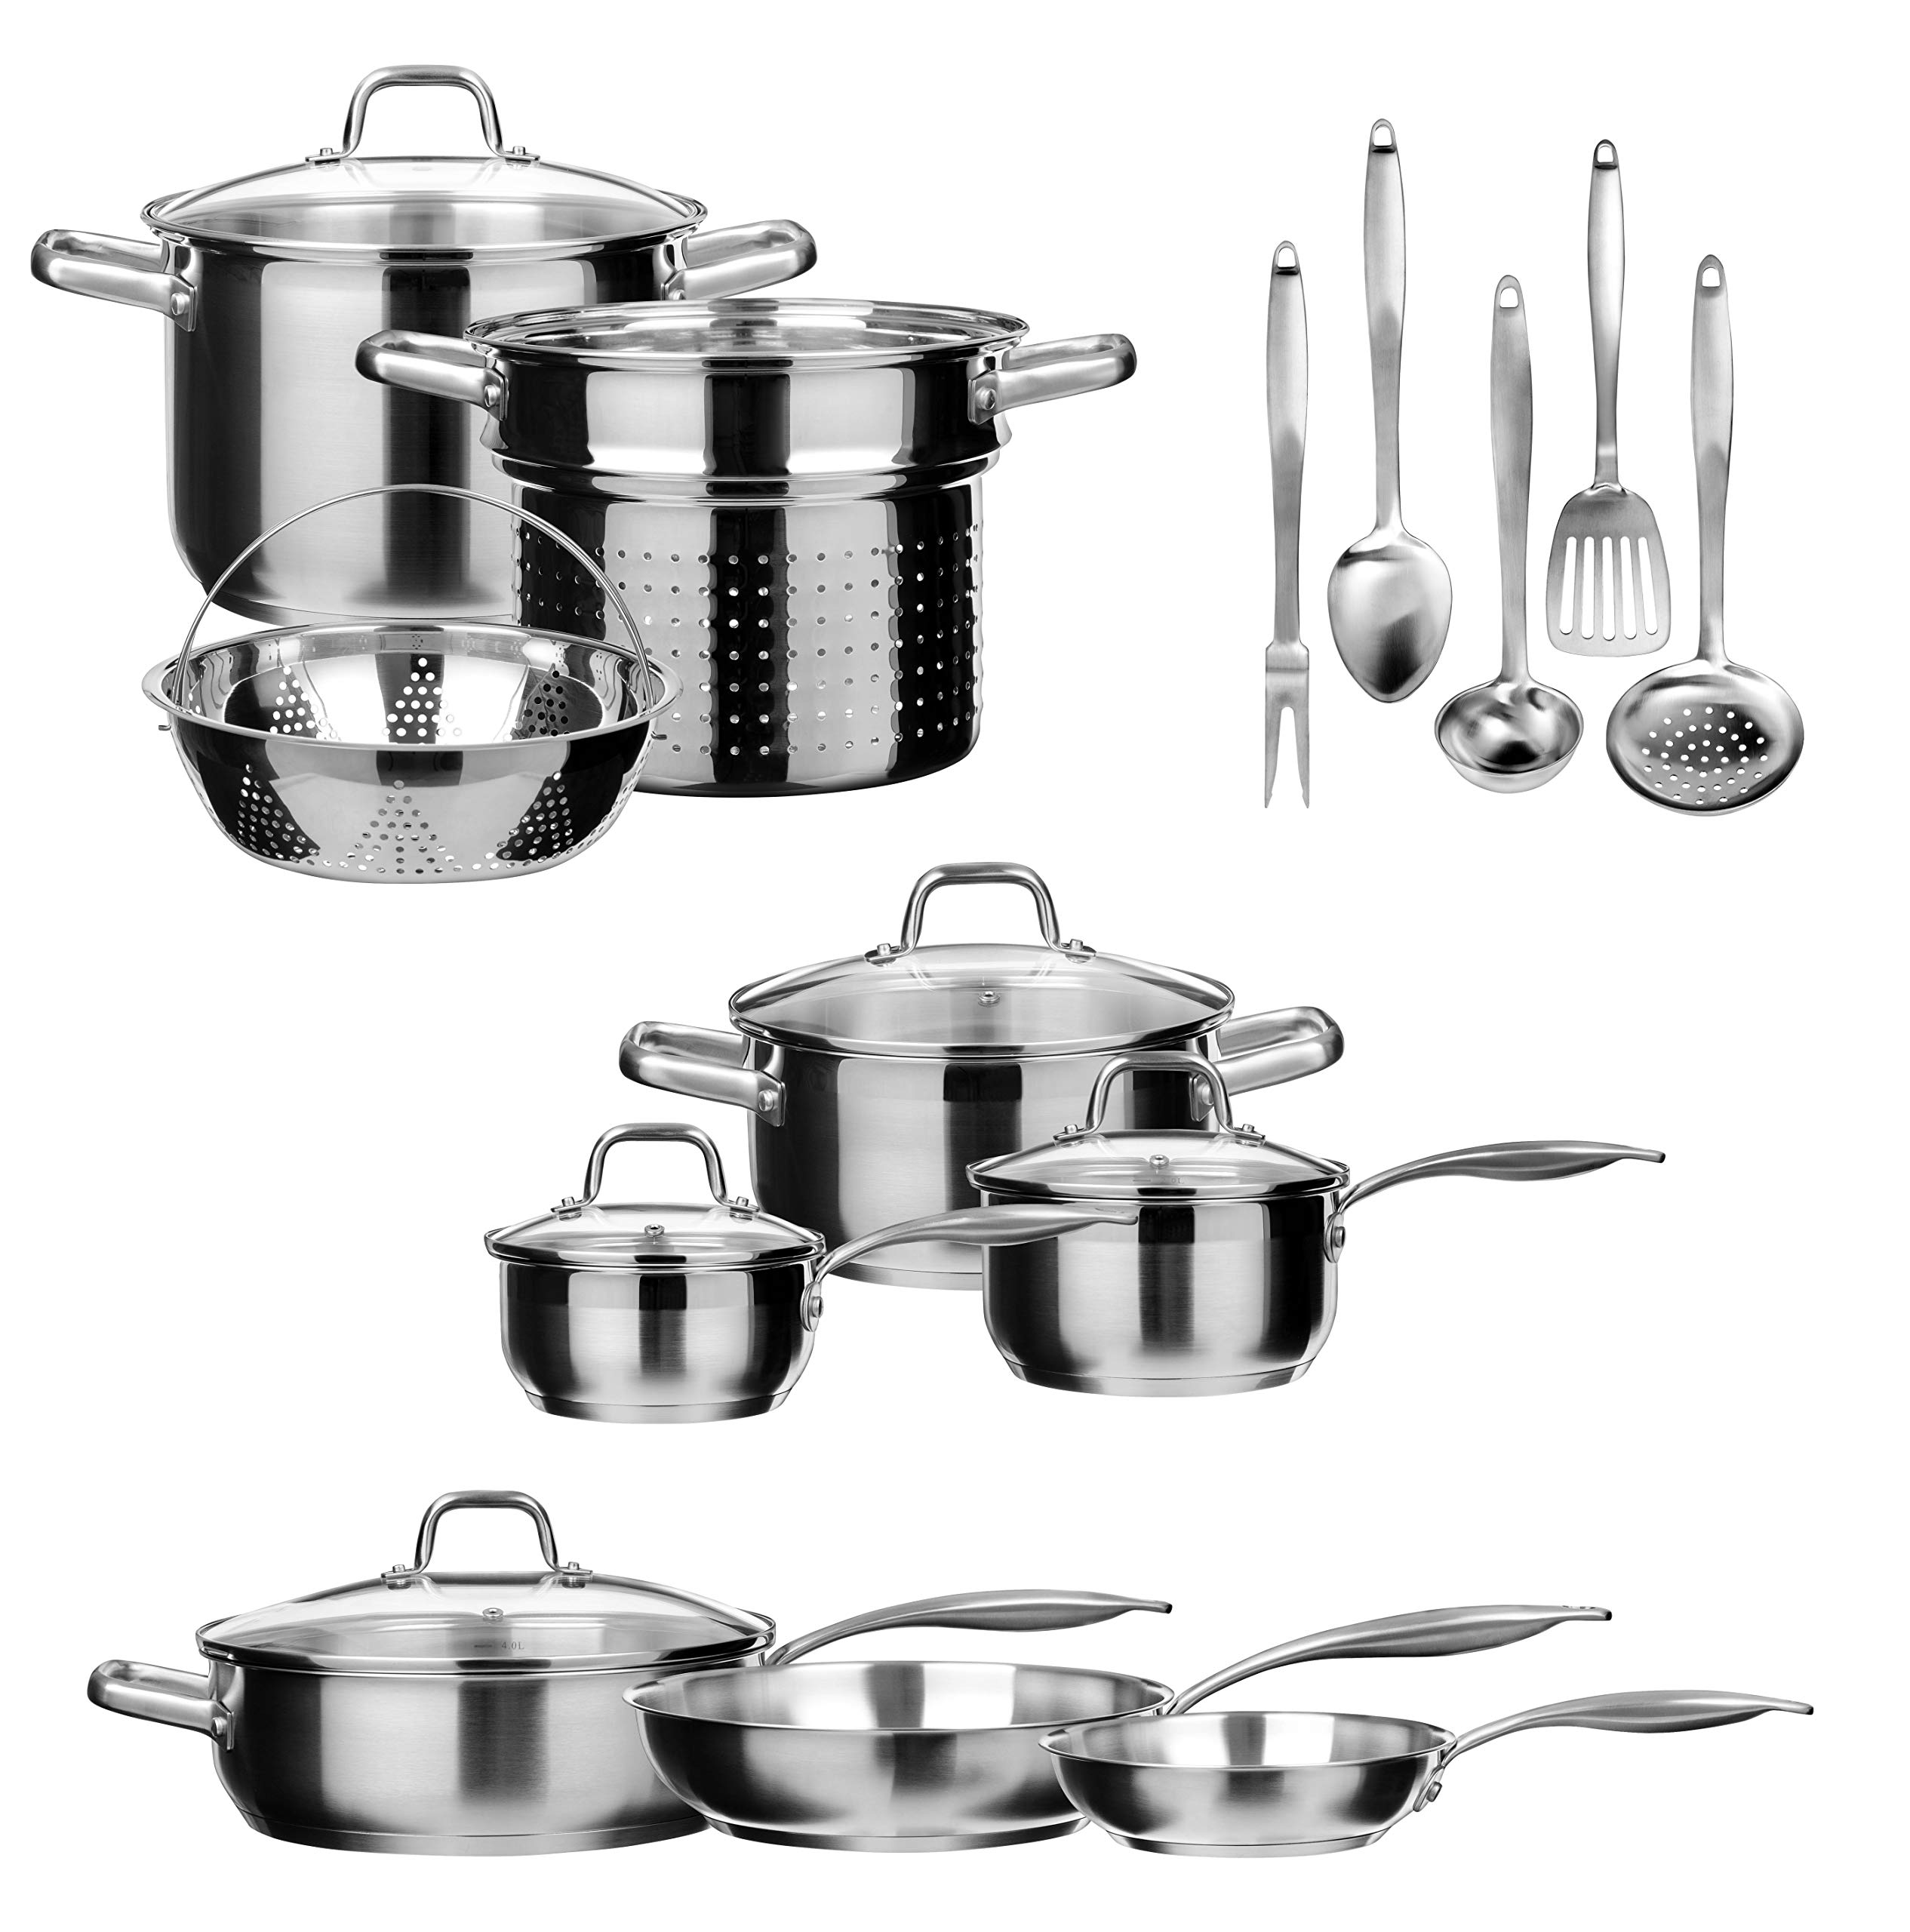 Duxtop SSIB Stainless Steel Induction Cookware Set, Impact-bonded Technology (19 Pieces)